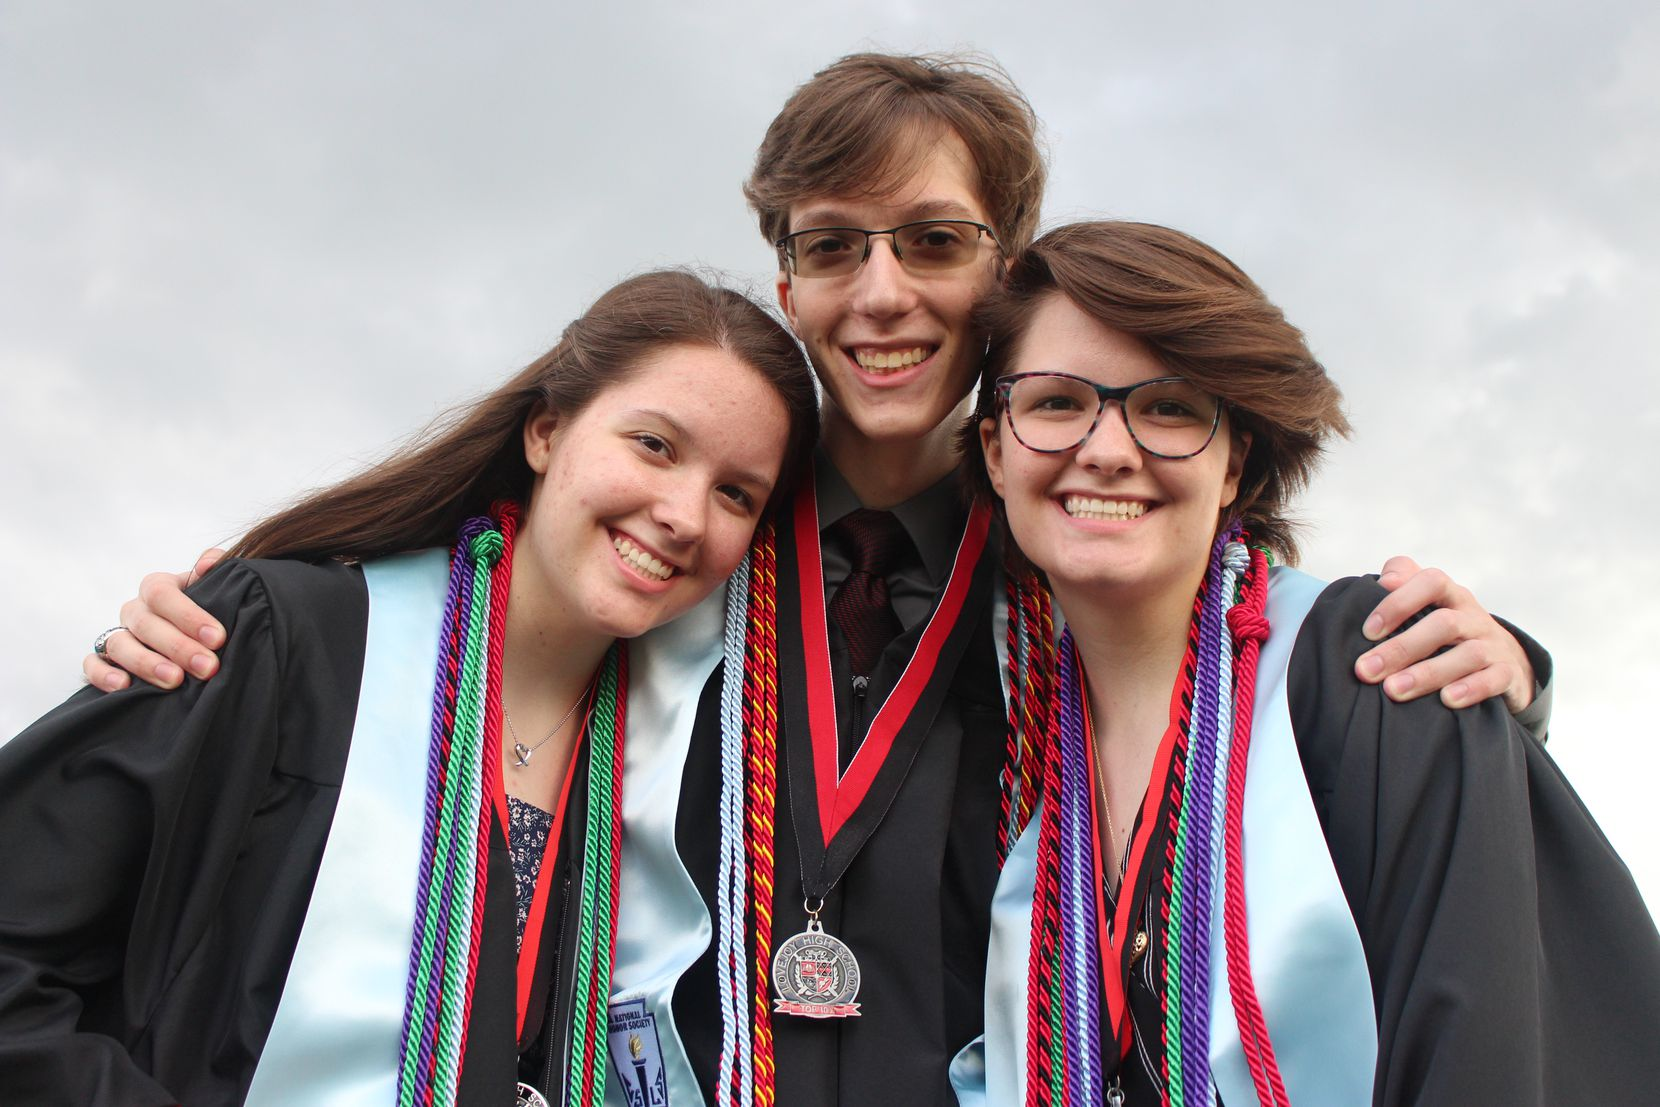 Triplets Jackie, Ian and Kelsey Carroll graduated from Lovejoy High School in May. Jackie and Kelsey had to make up their AP Physics C: Electricity and Magnetism exam two days after receiving their high school diploma. All three of the siblings graduated in the top 10% of their class, which was something they wanted to achieve together. Kelsey said taking as many AP classes as she could help raise her GPA to the top of the class.